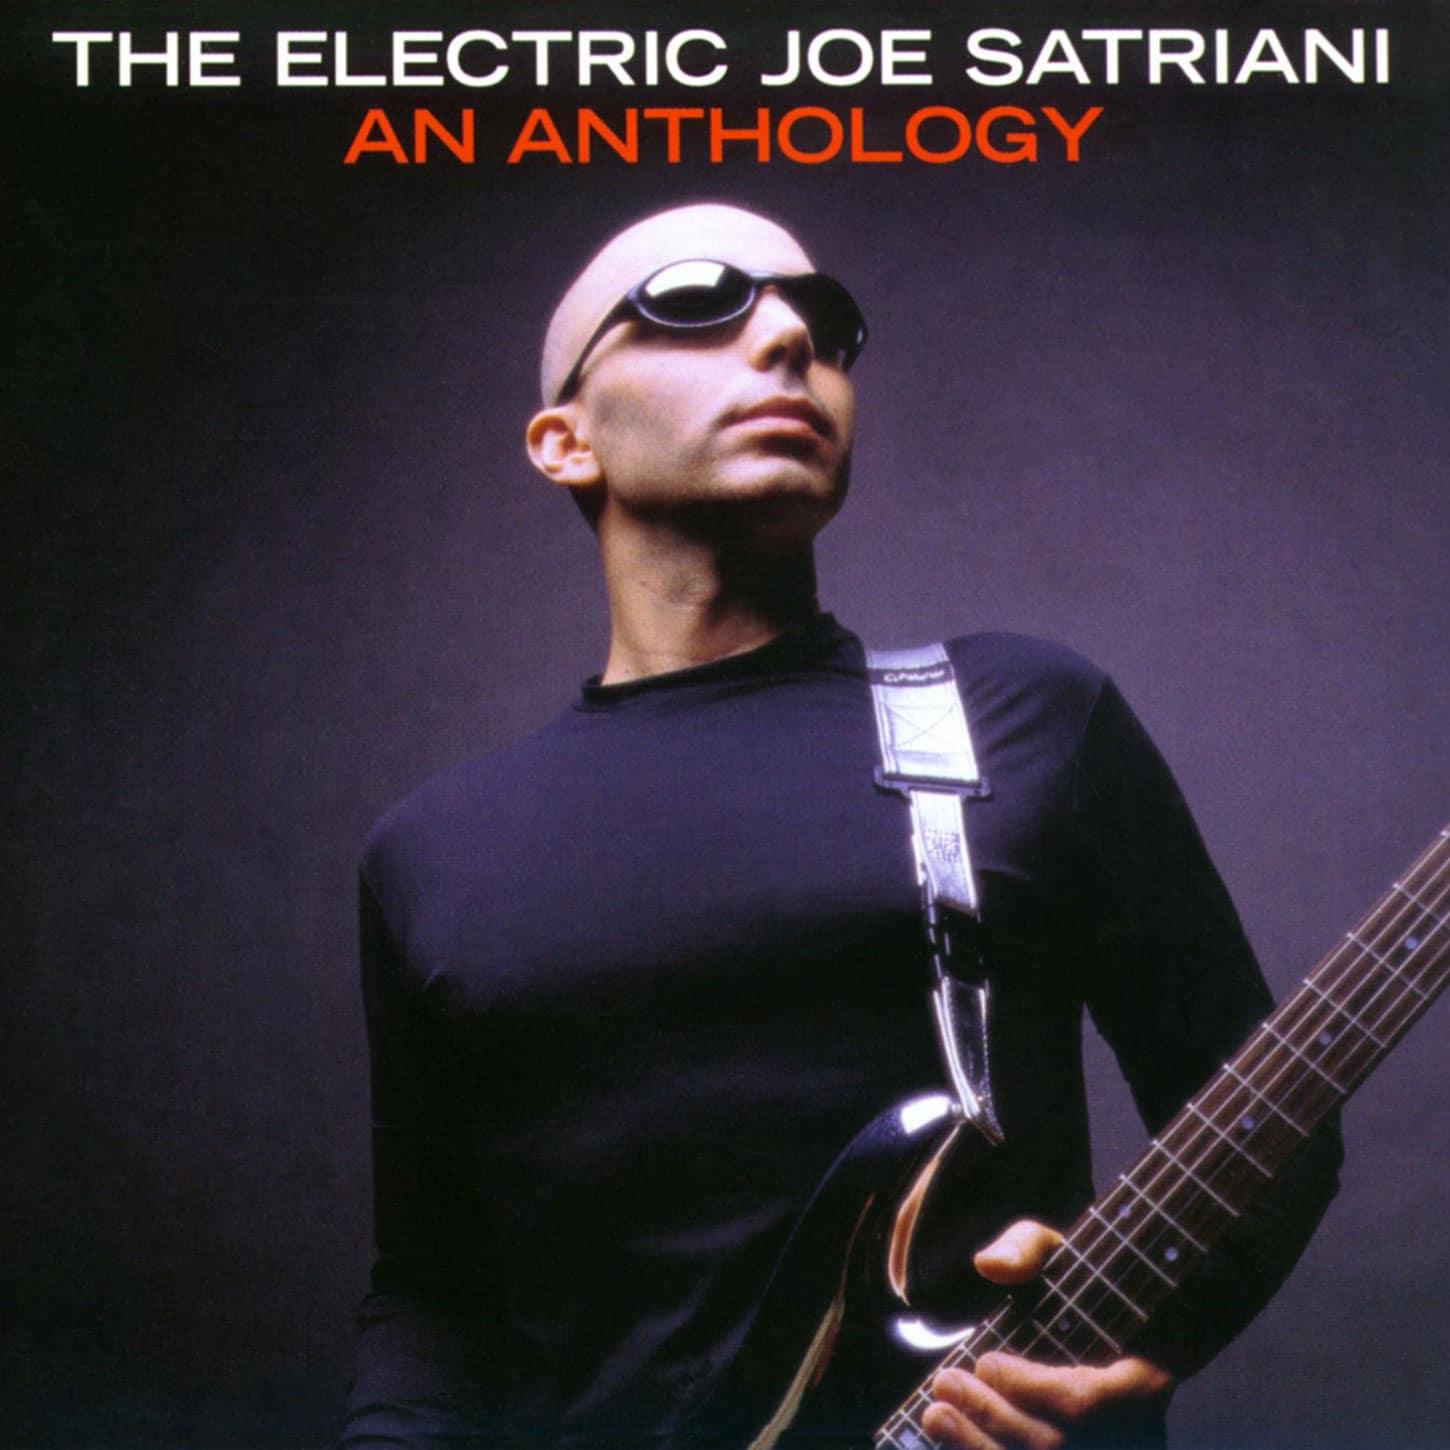 The Electric Joe Satriani An Anthology album CD